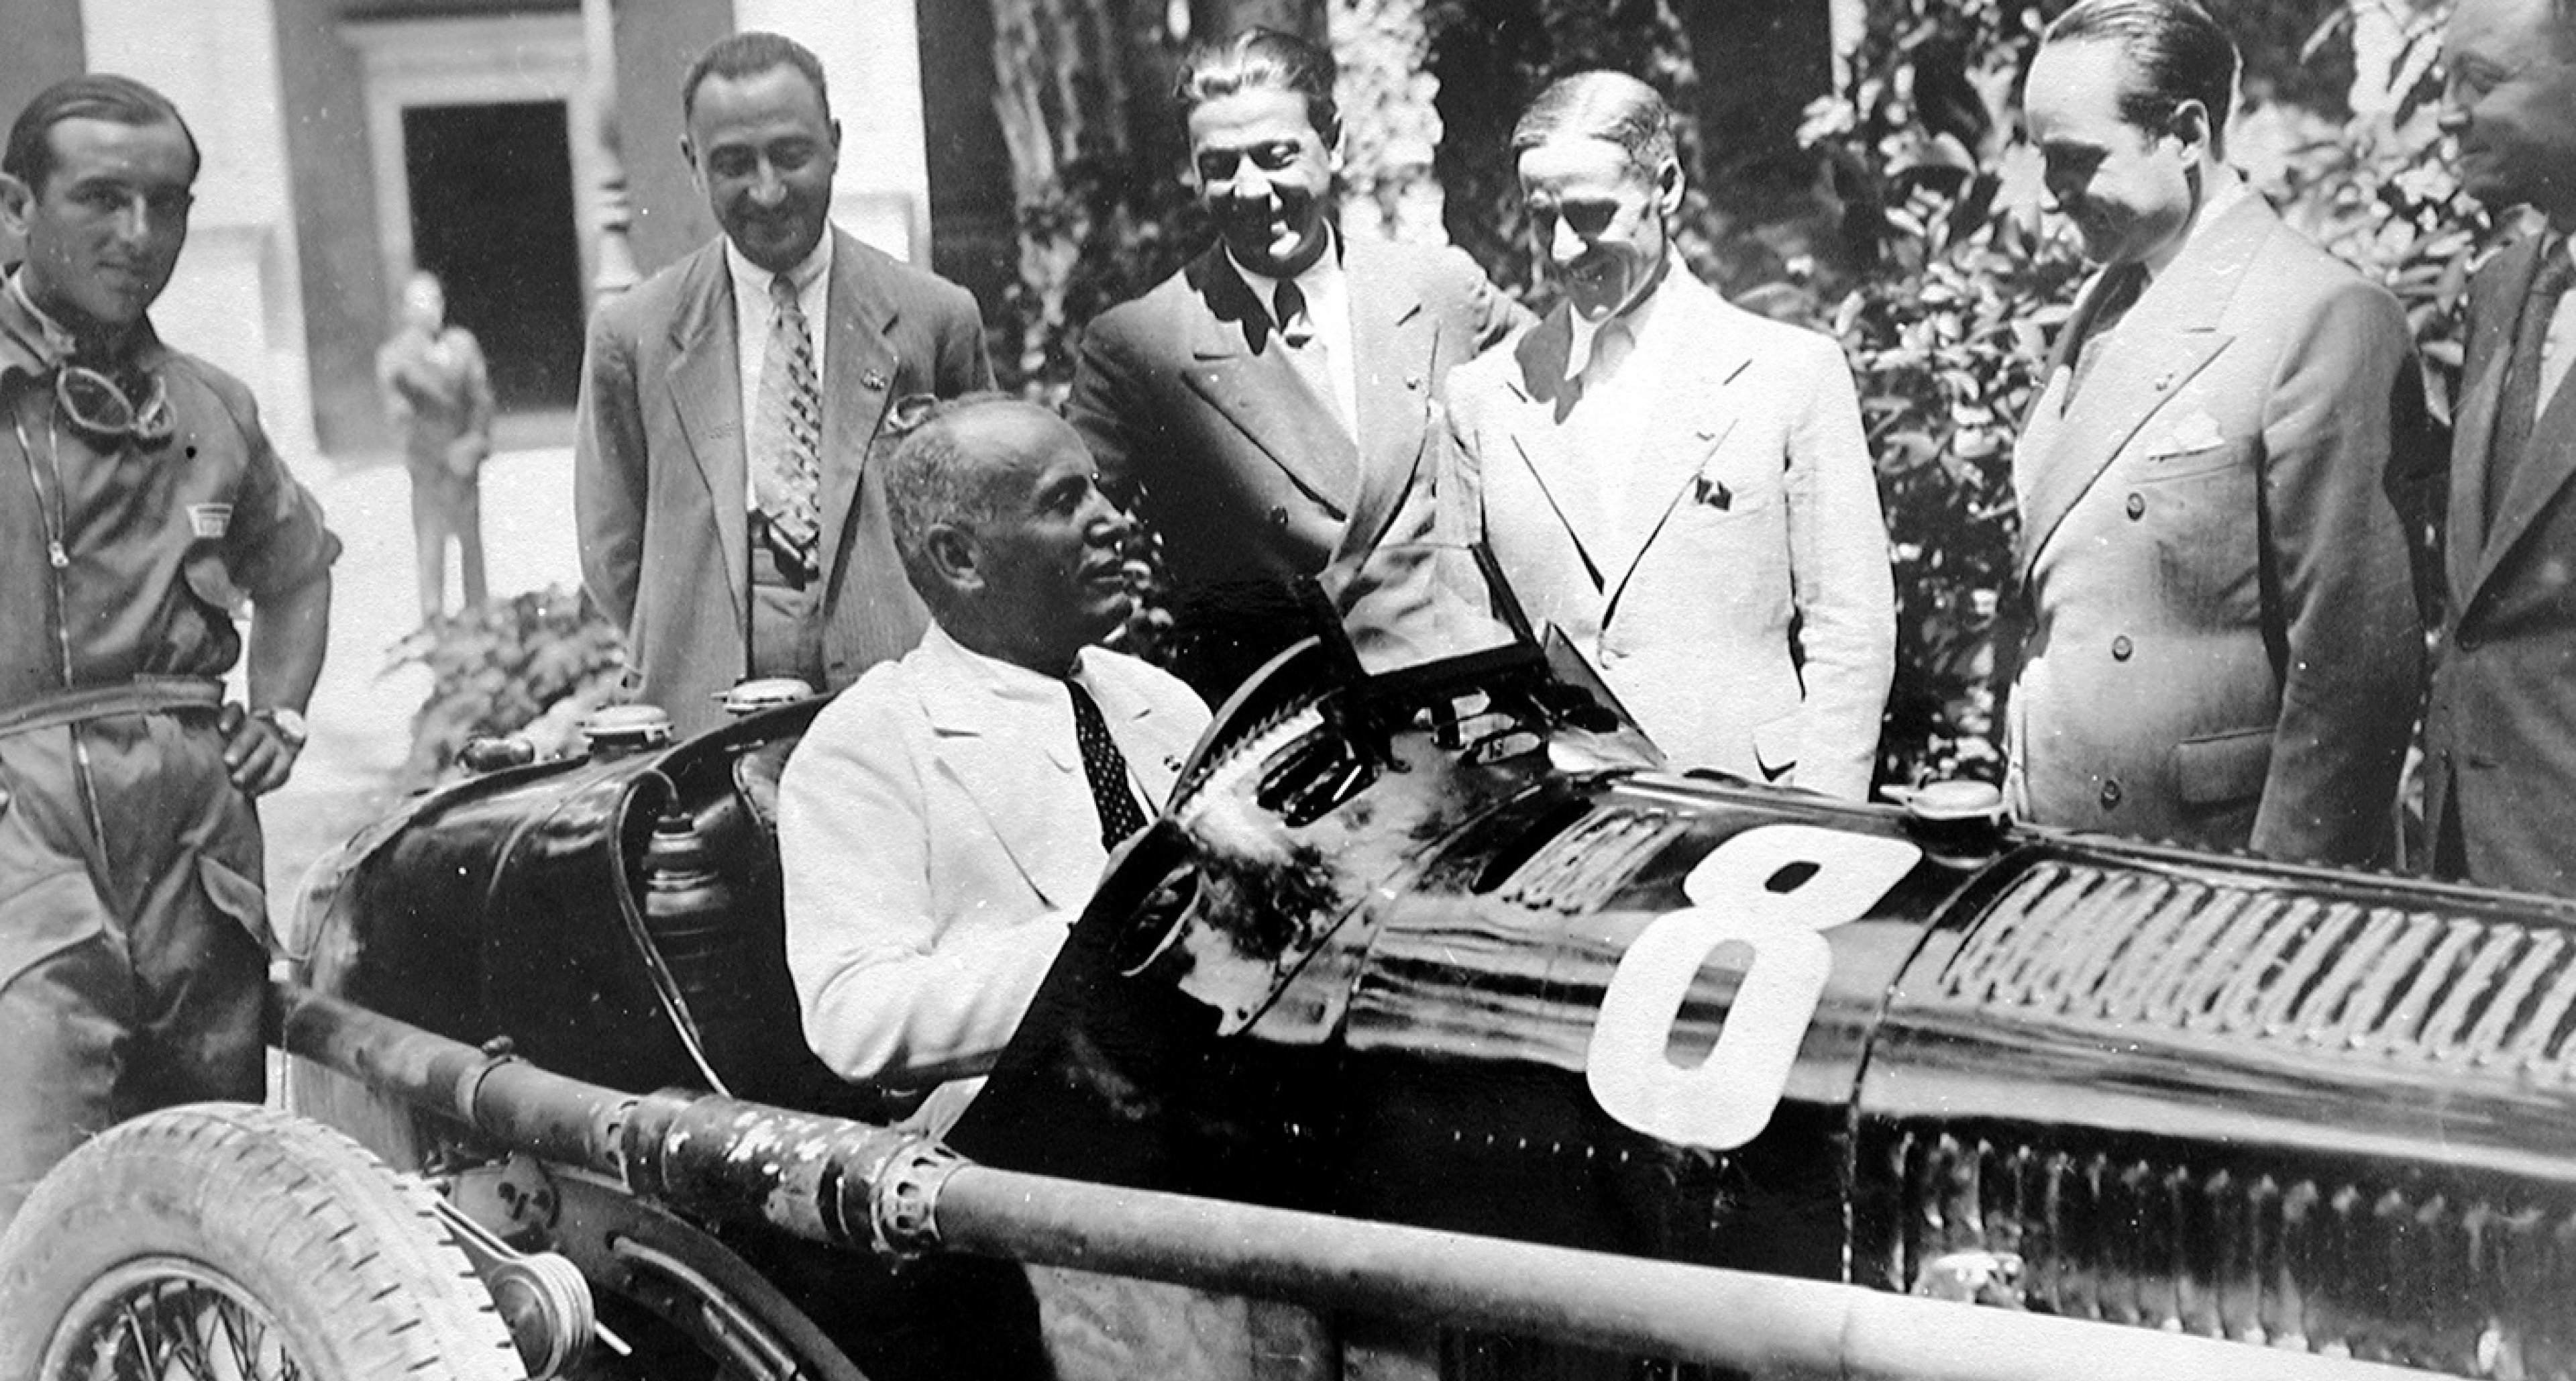 Mussolini meets Tazio Nuvolari (centre) and the Alfa Romeo team. He had commissioned a one-off V16 Maserati some years earlier